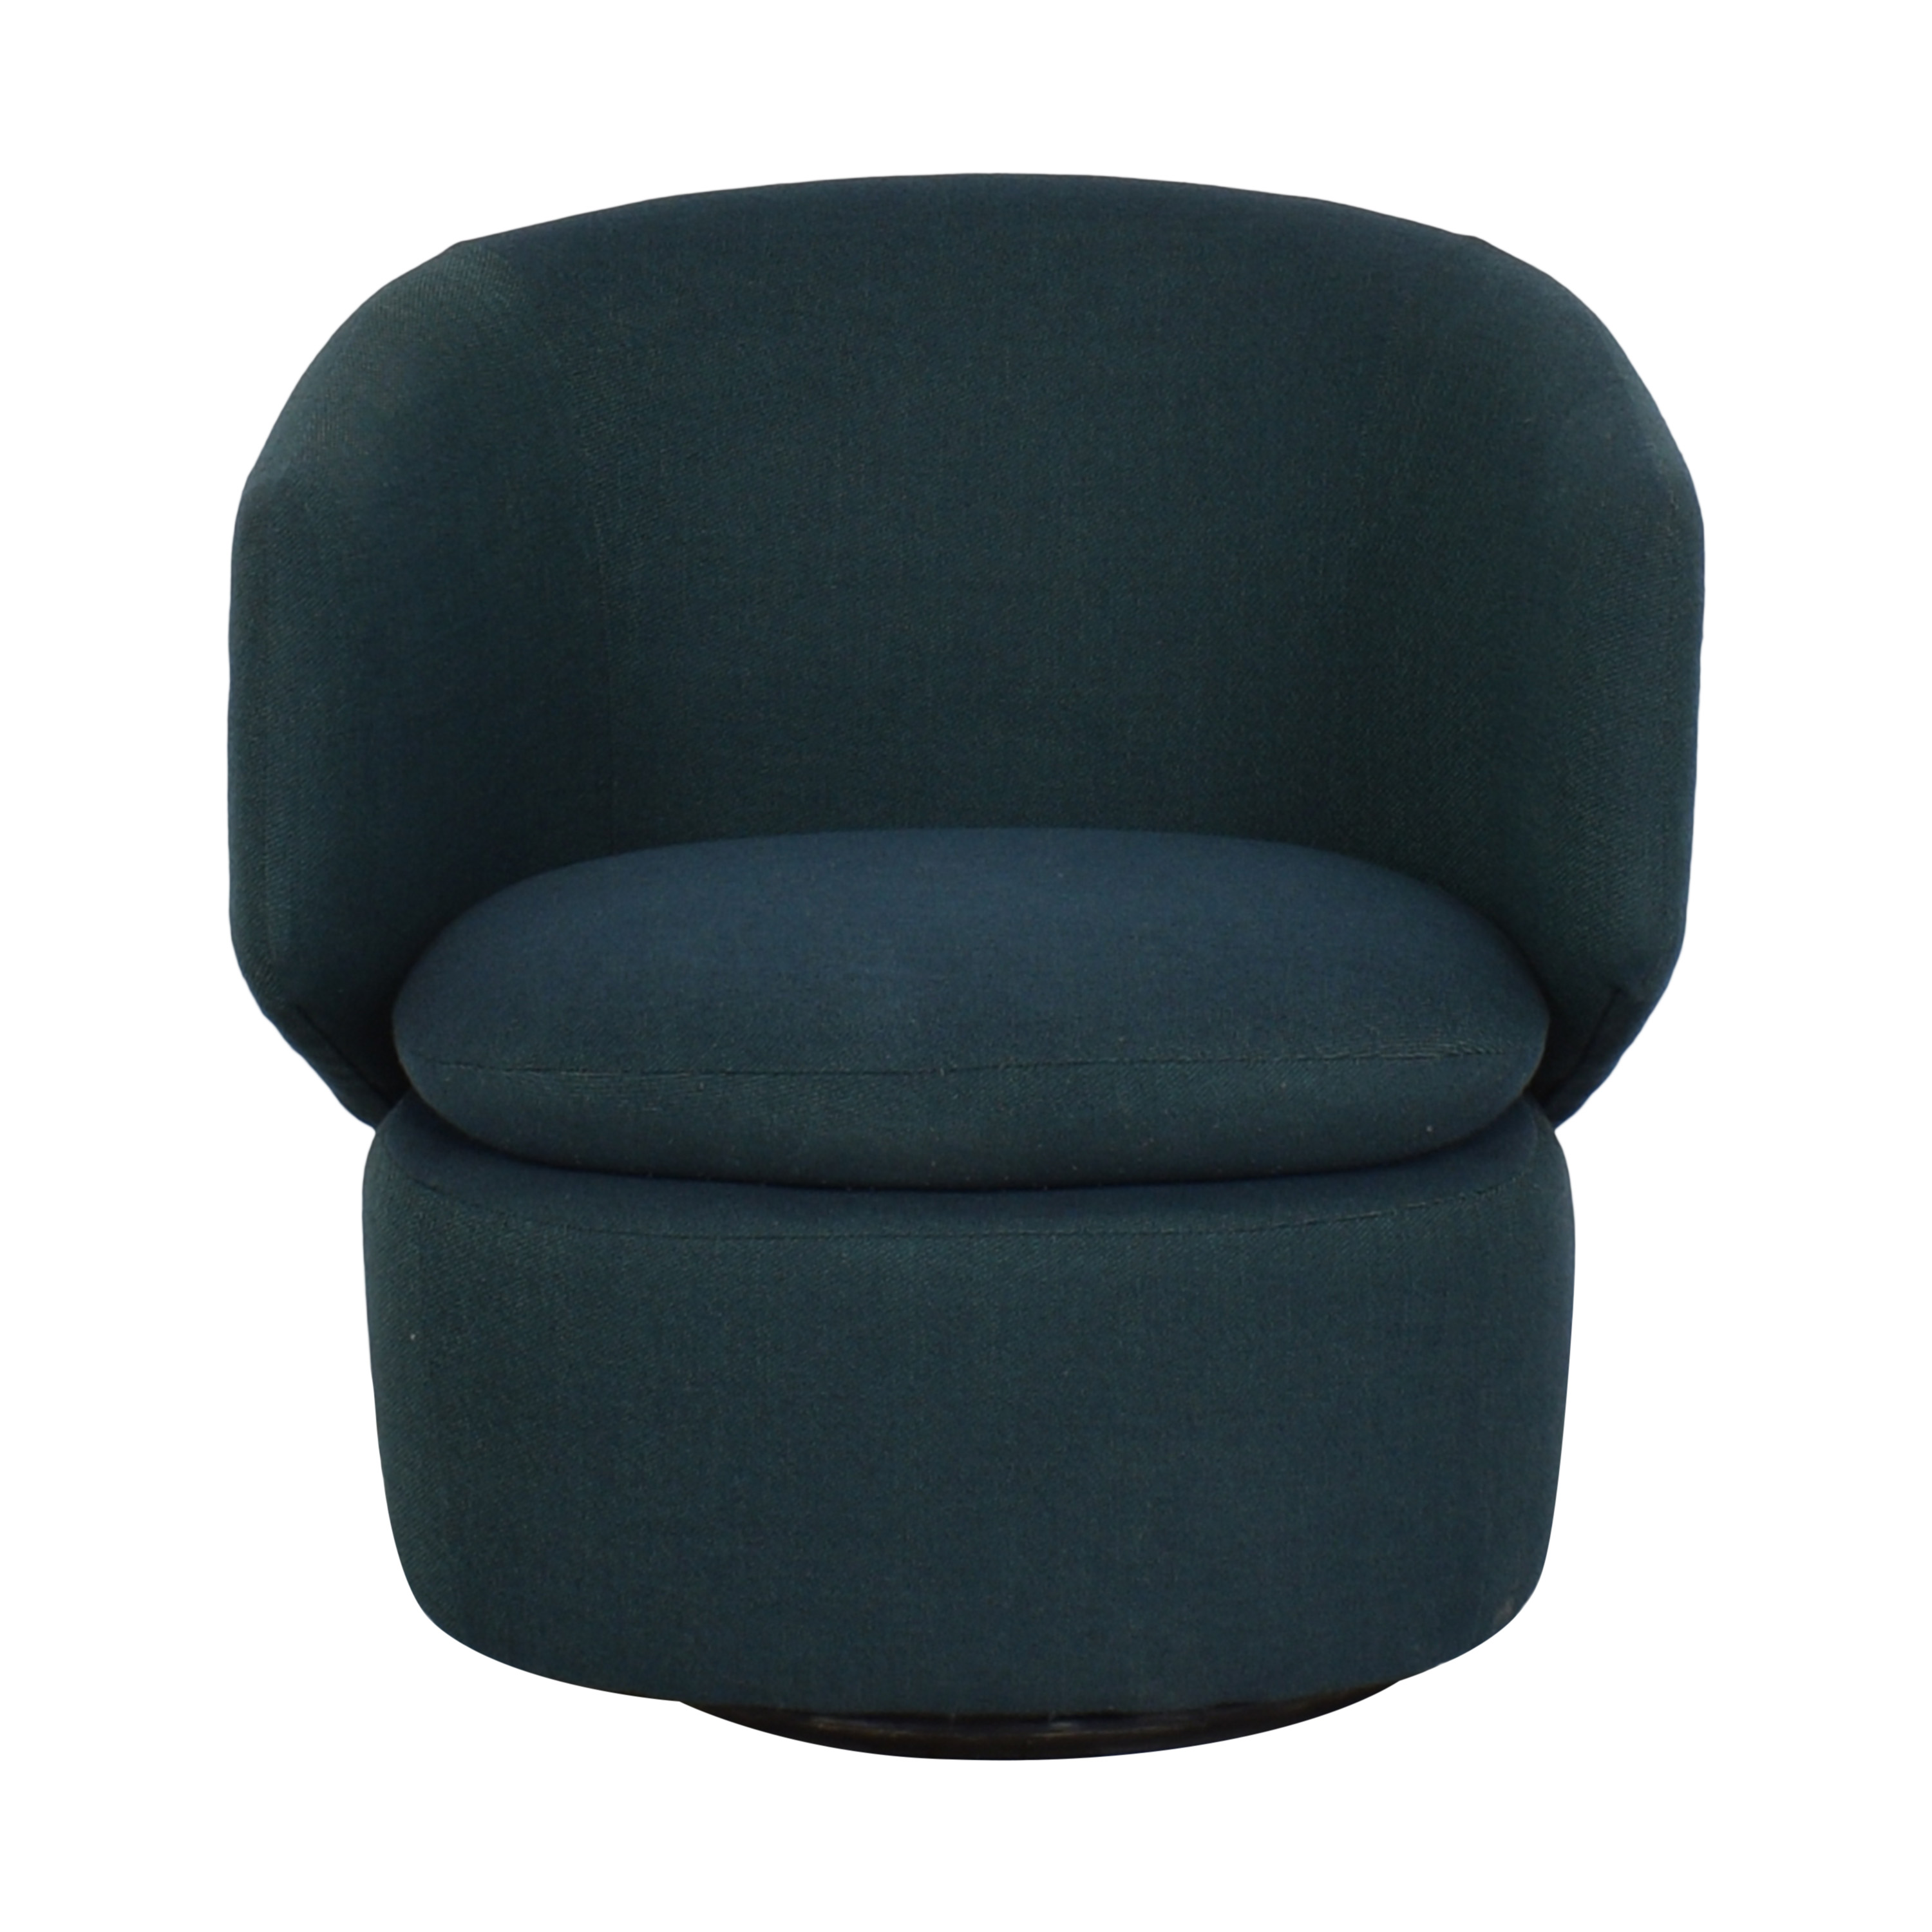 West Elm West Elm Crescent Swivel Chair Chairs